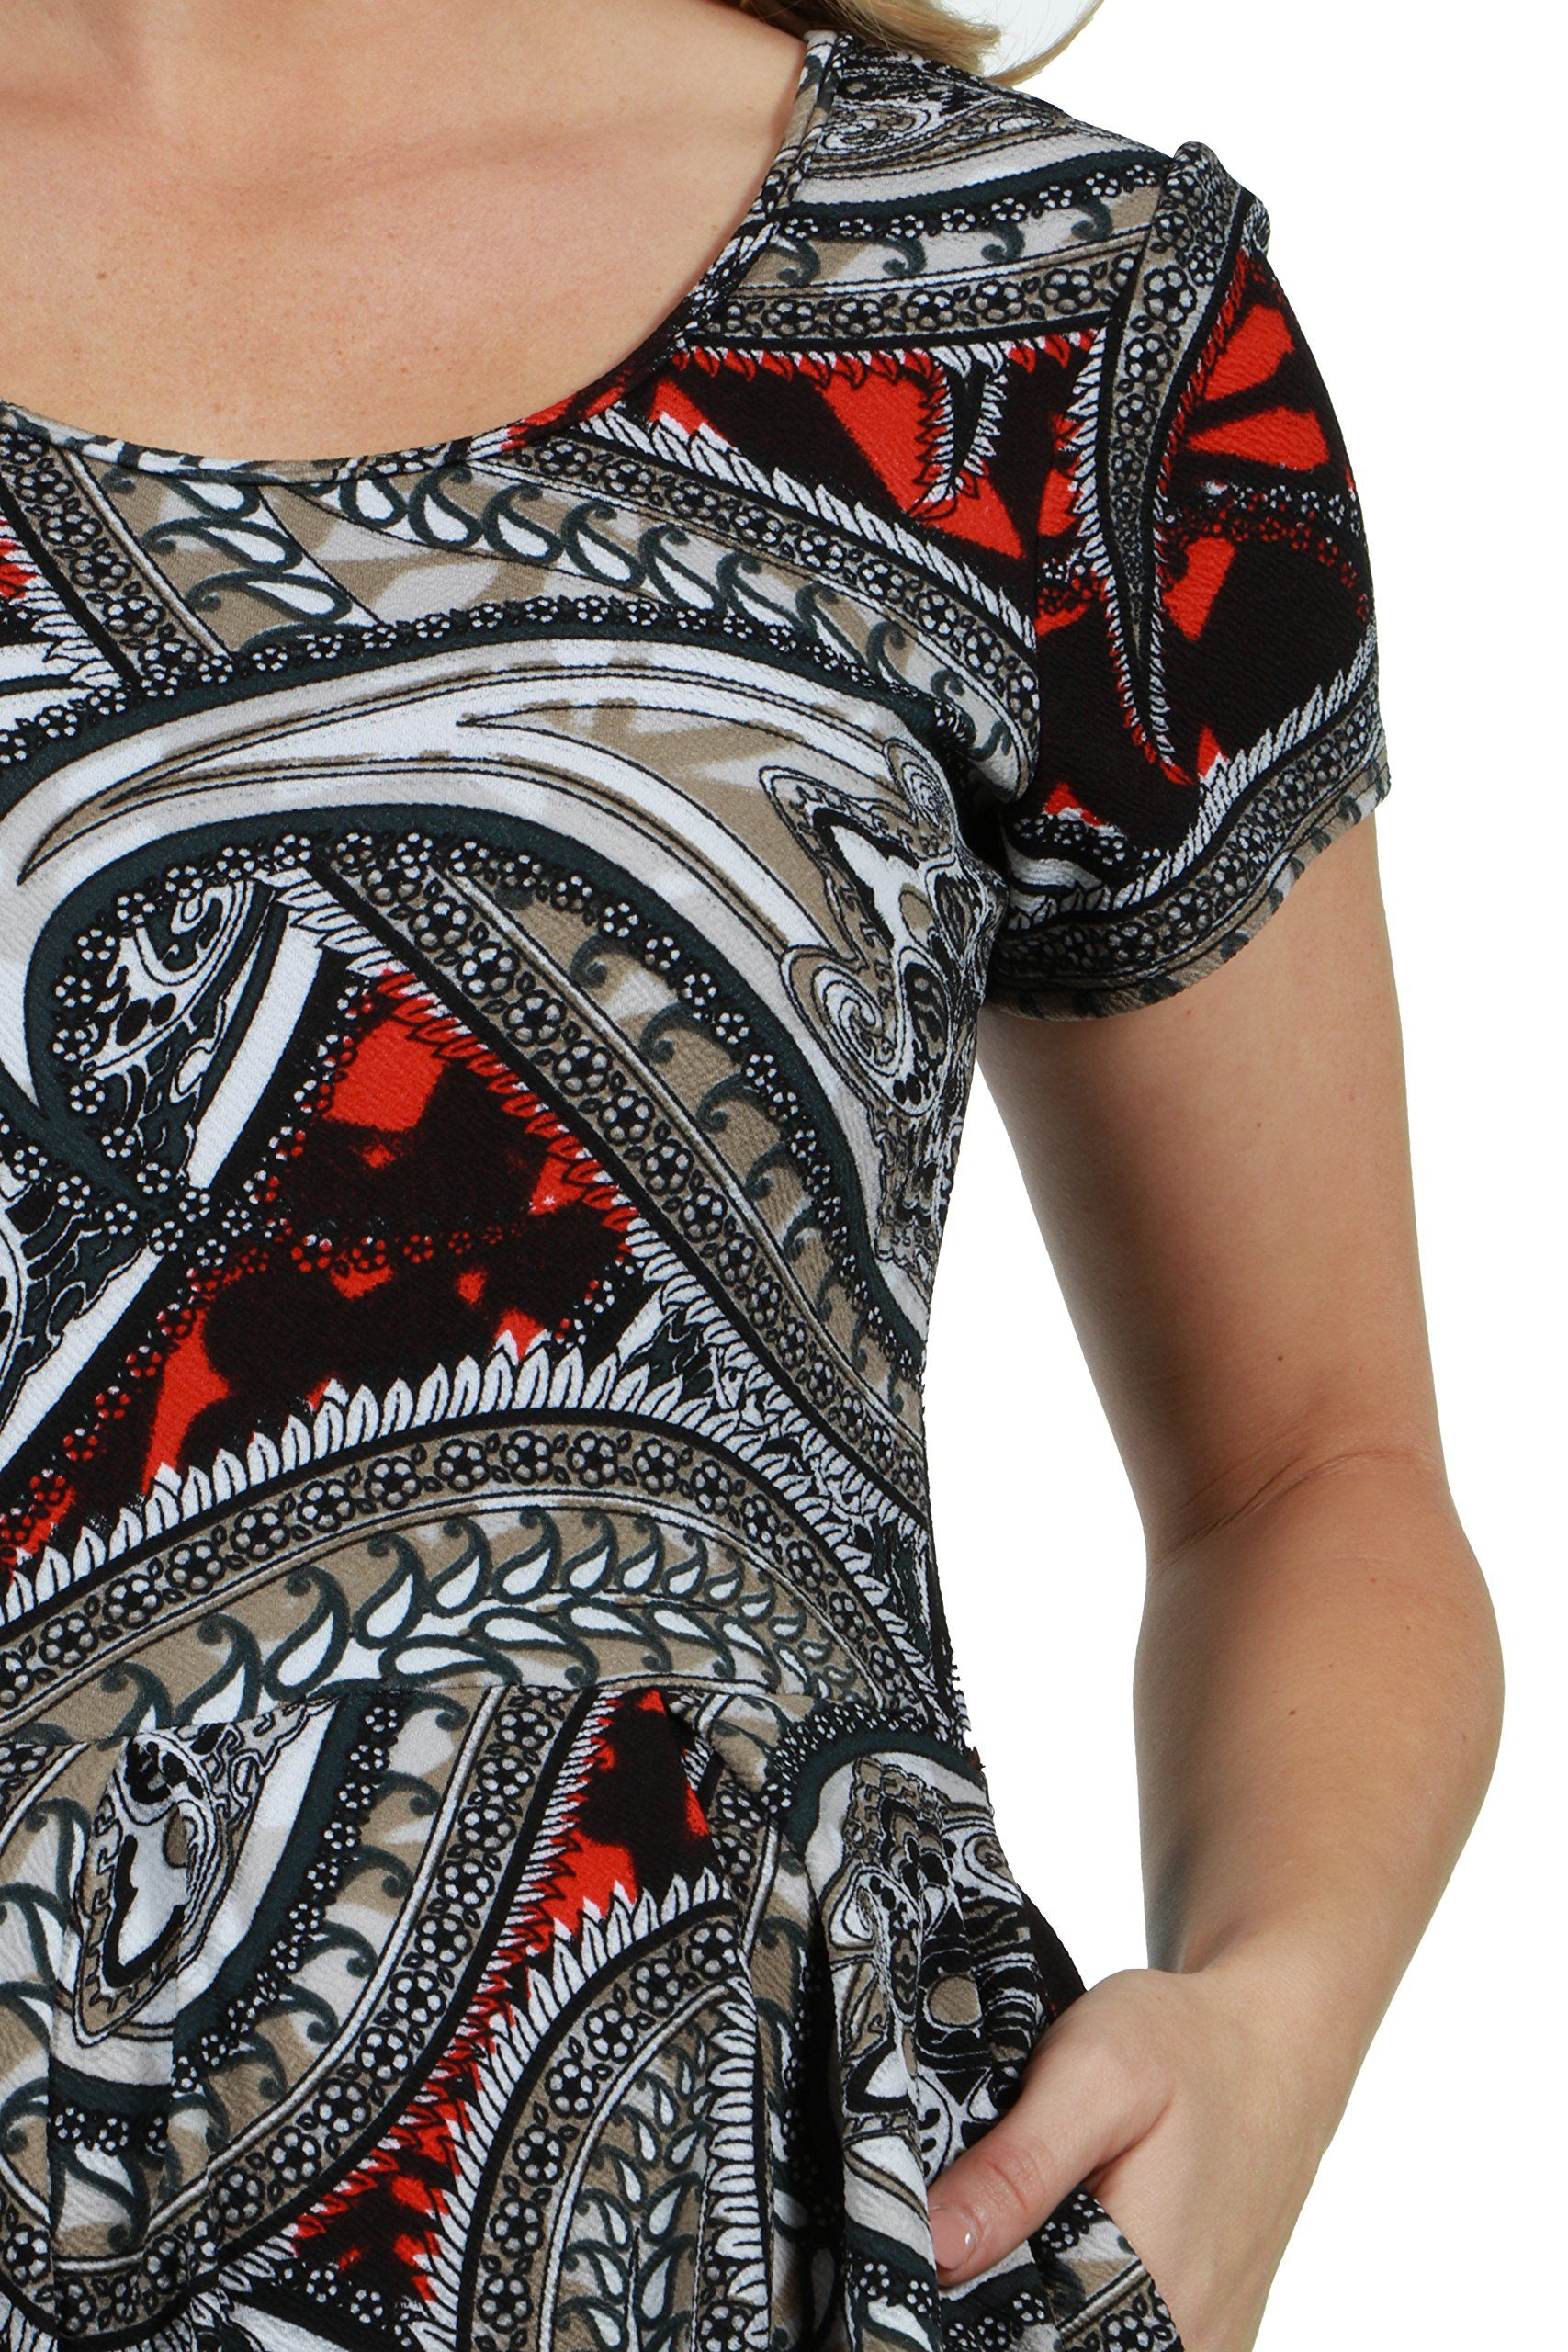 fba32fac62 Maternity Styles - awesome maternity dresses   24Seven Comfort Apparel  Black and Red Fit and Flare Short Sleeve Maternity Mini Dres Large  Multicolor     ...